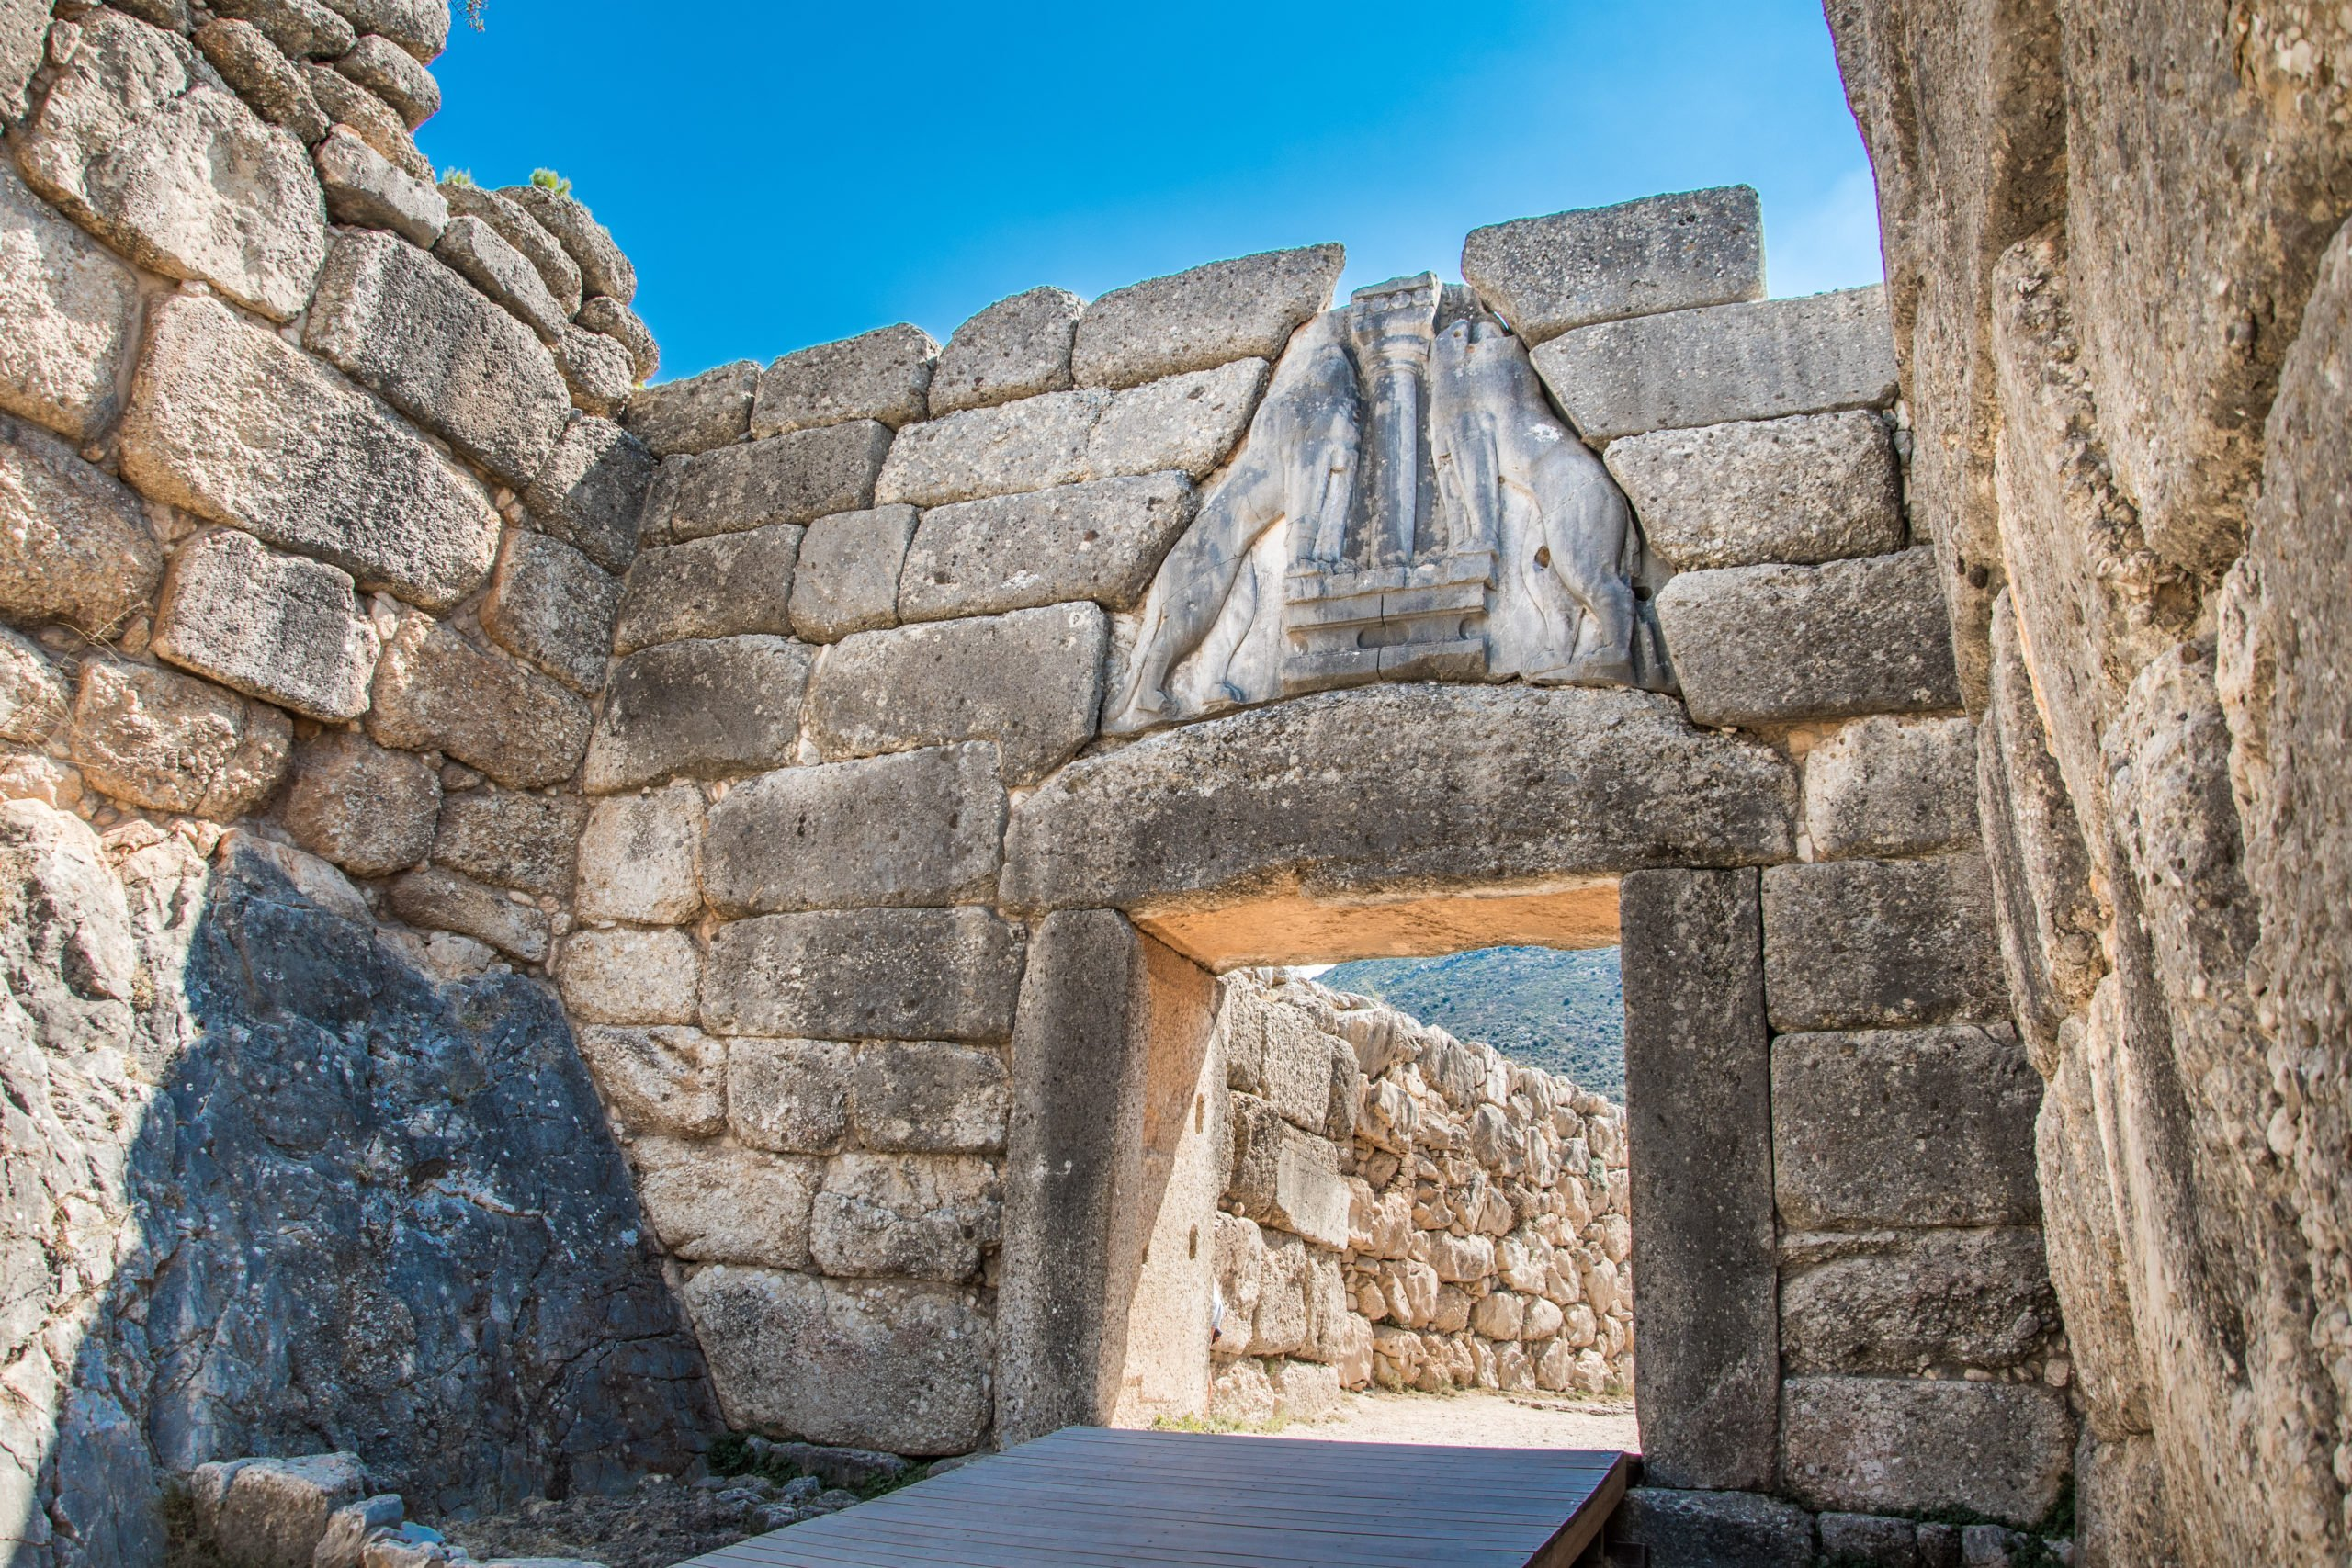 Enter To The Citadel Of Mycenae Through The Original Entrance - The Lion Gate - On Your Epidaurus & Mycenae Tour From Athens